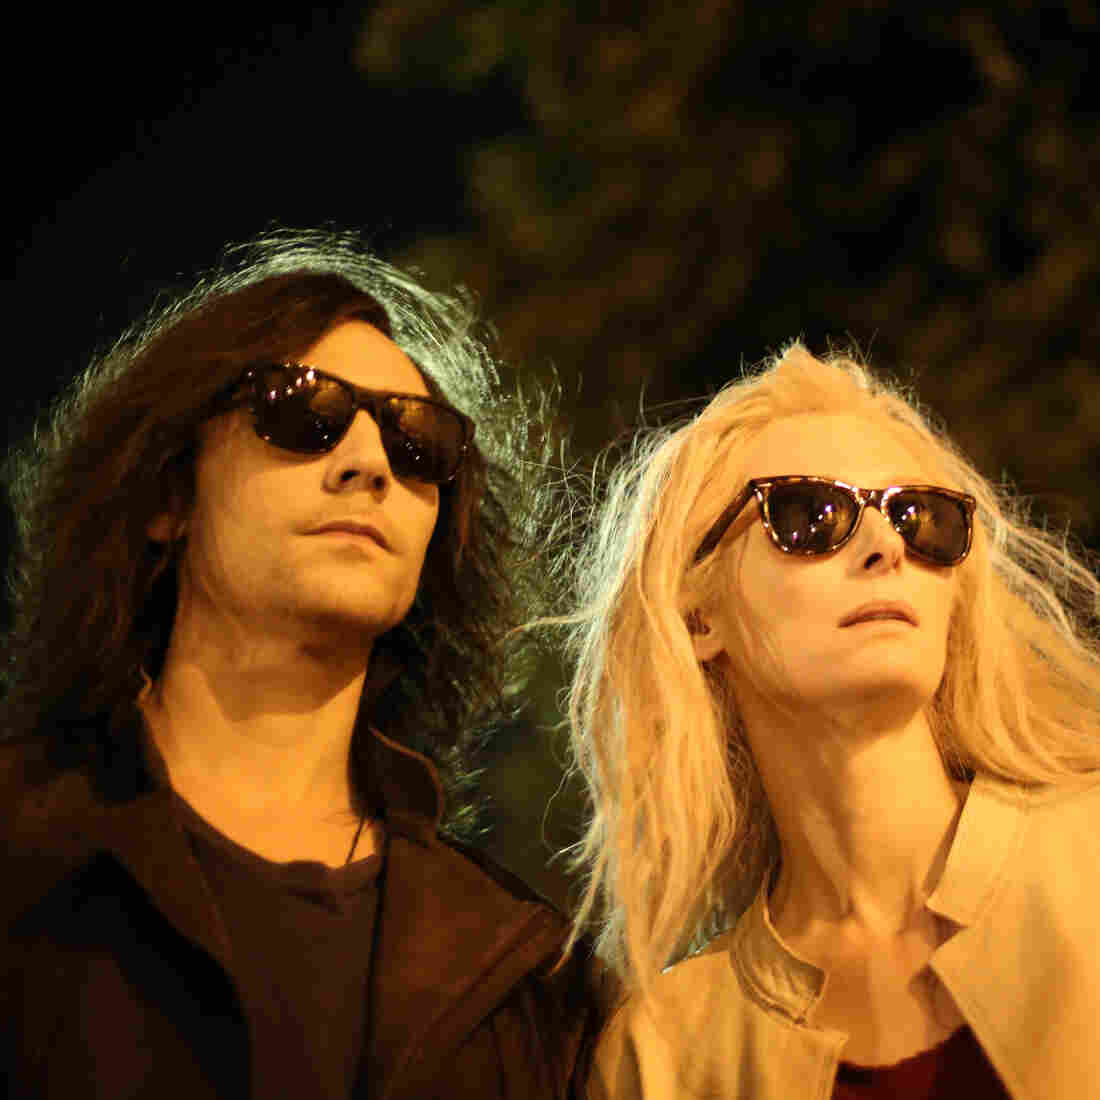 Tom Hiddleston and Tilda Swinton play some really hip vampires in Jim Jarmusch's Only Lovers Left Alive.